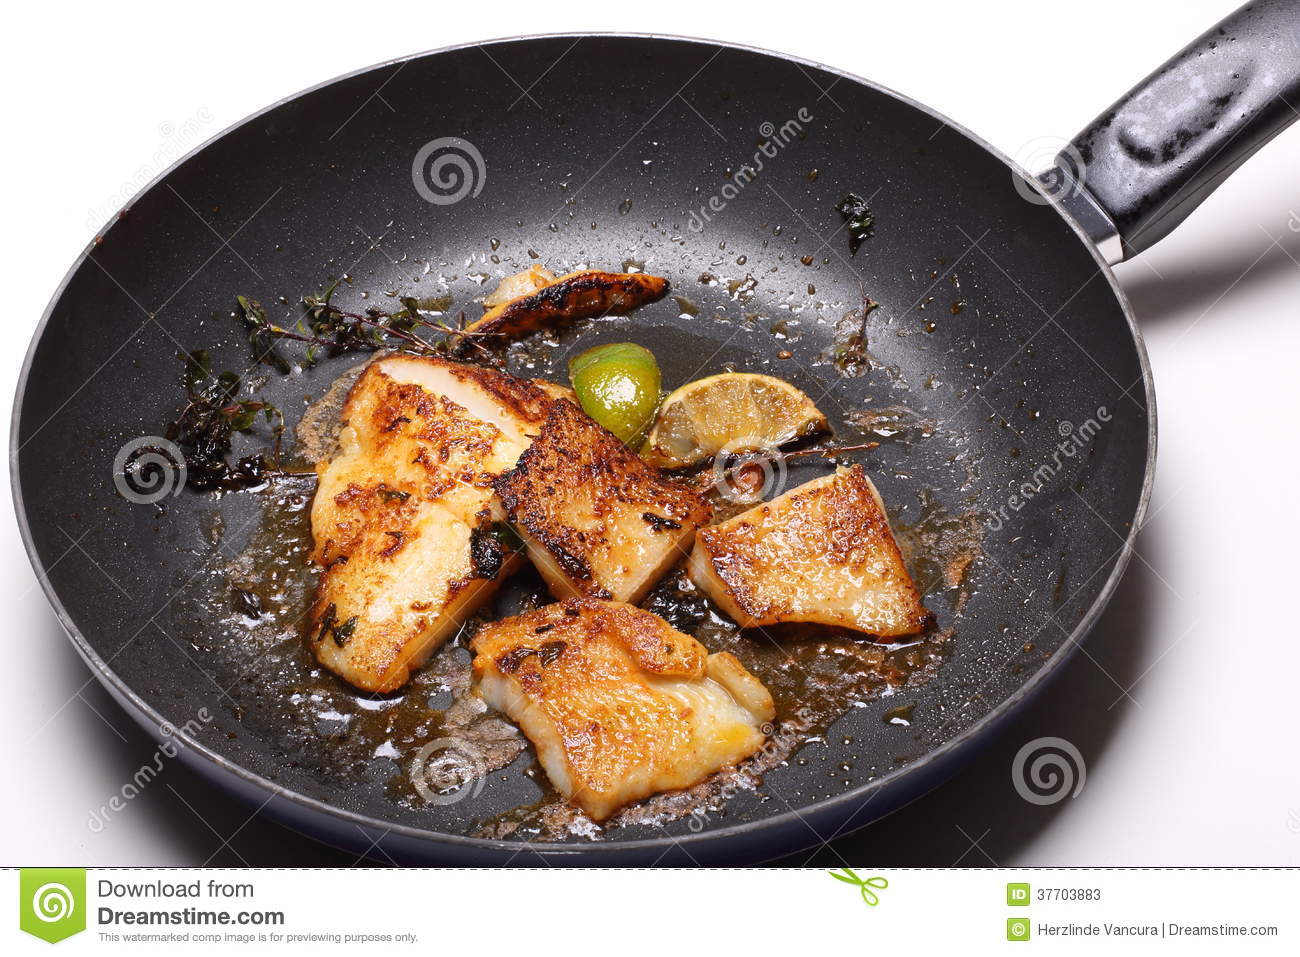 Fish fillets in frying pan stock photos image 37703883 for Pan fried fish fillet recipes